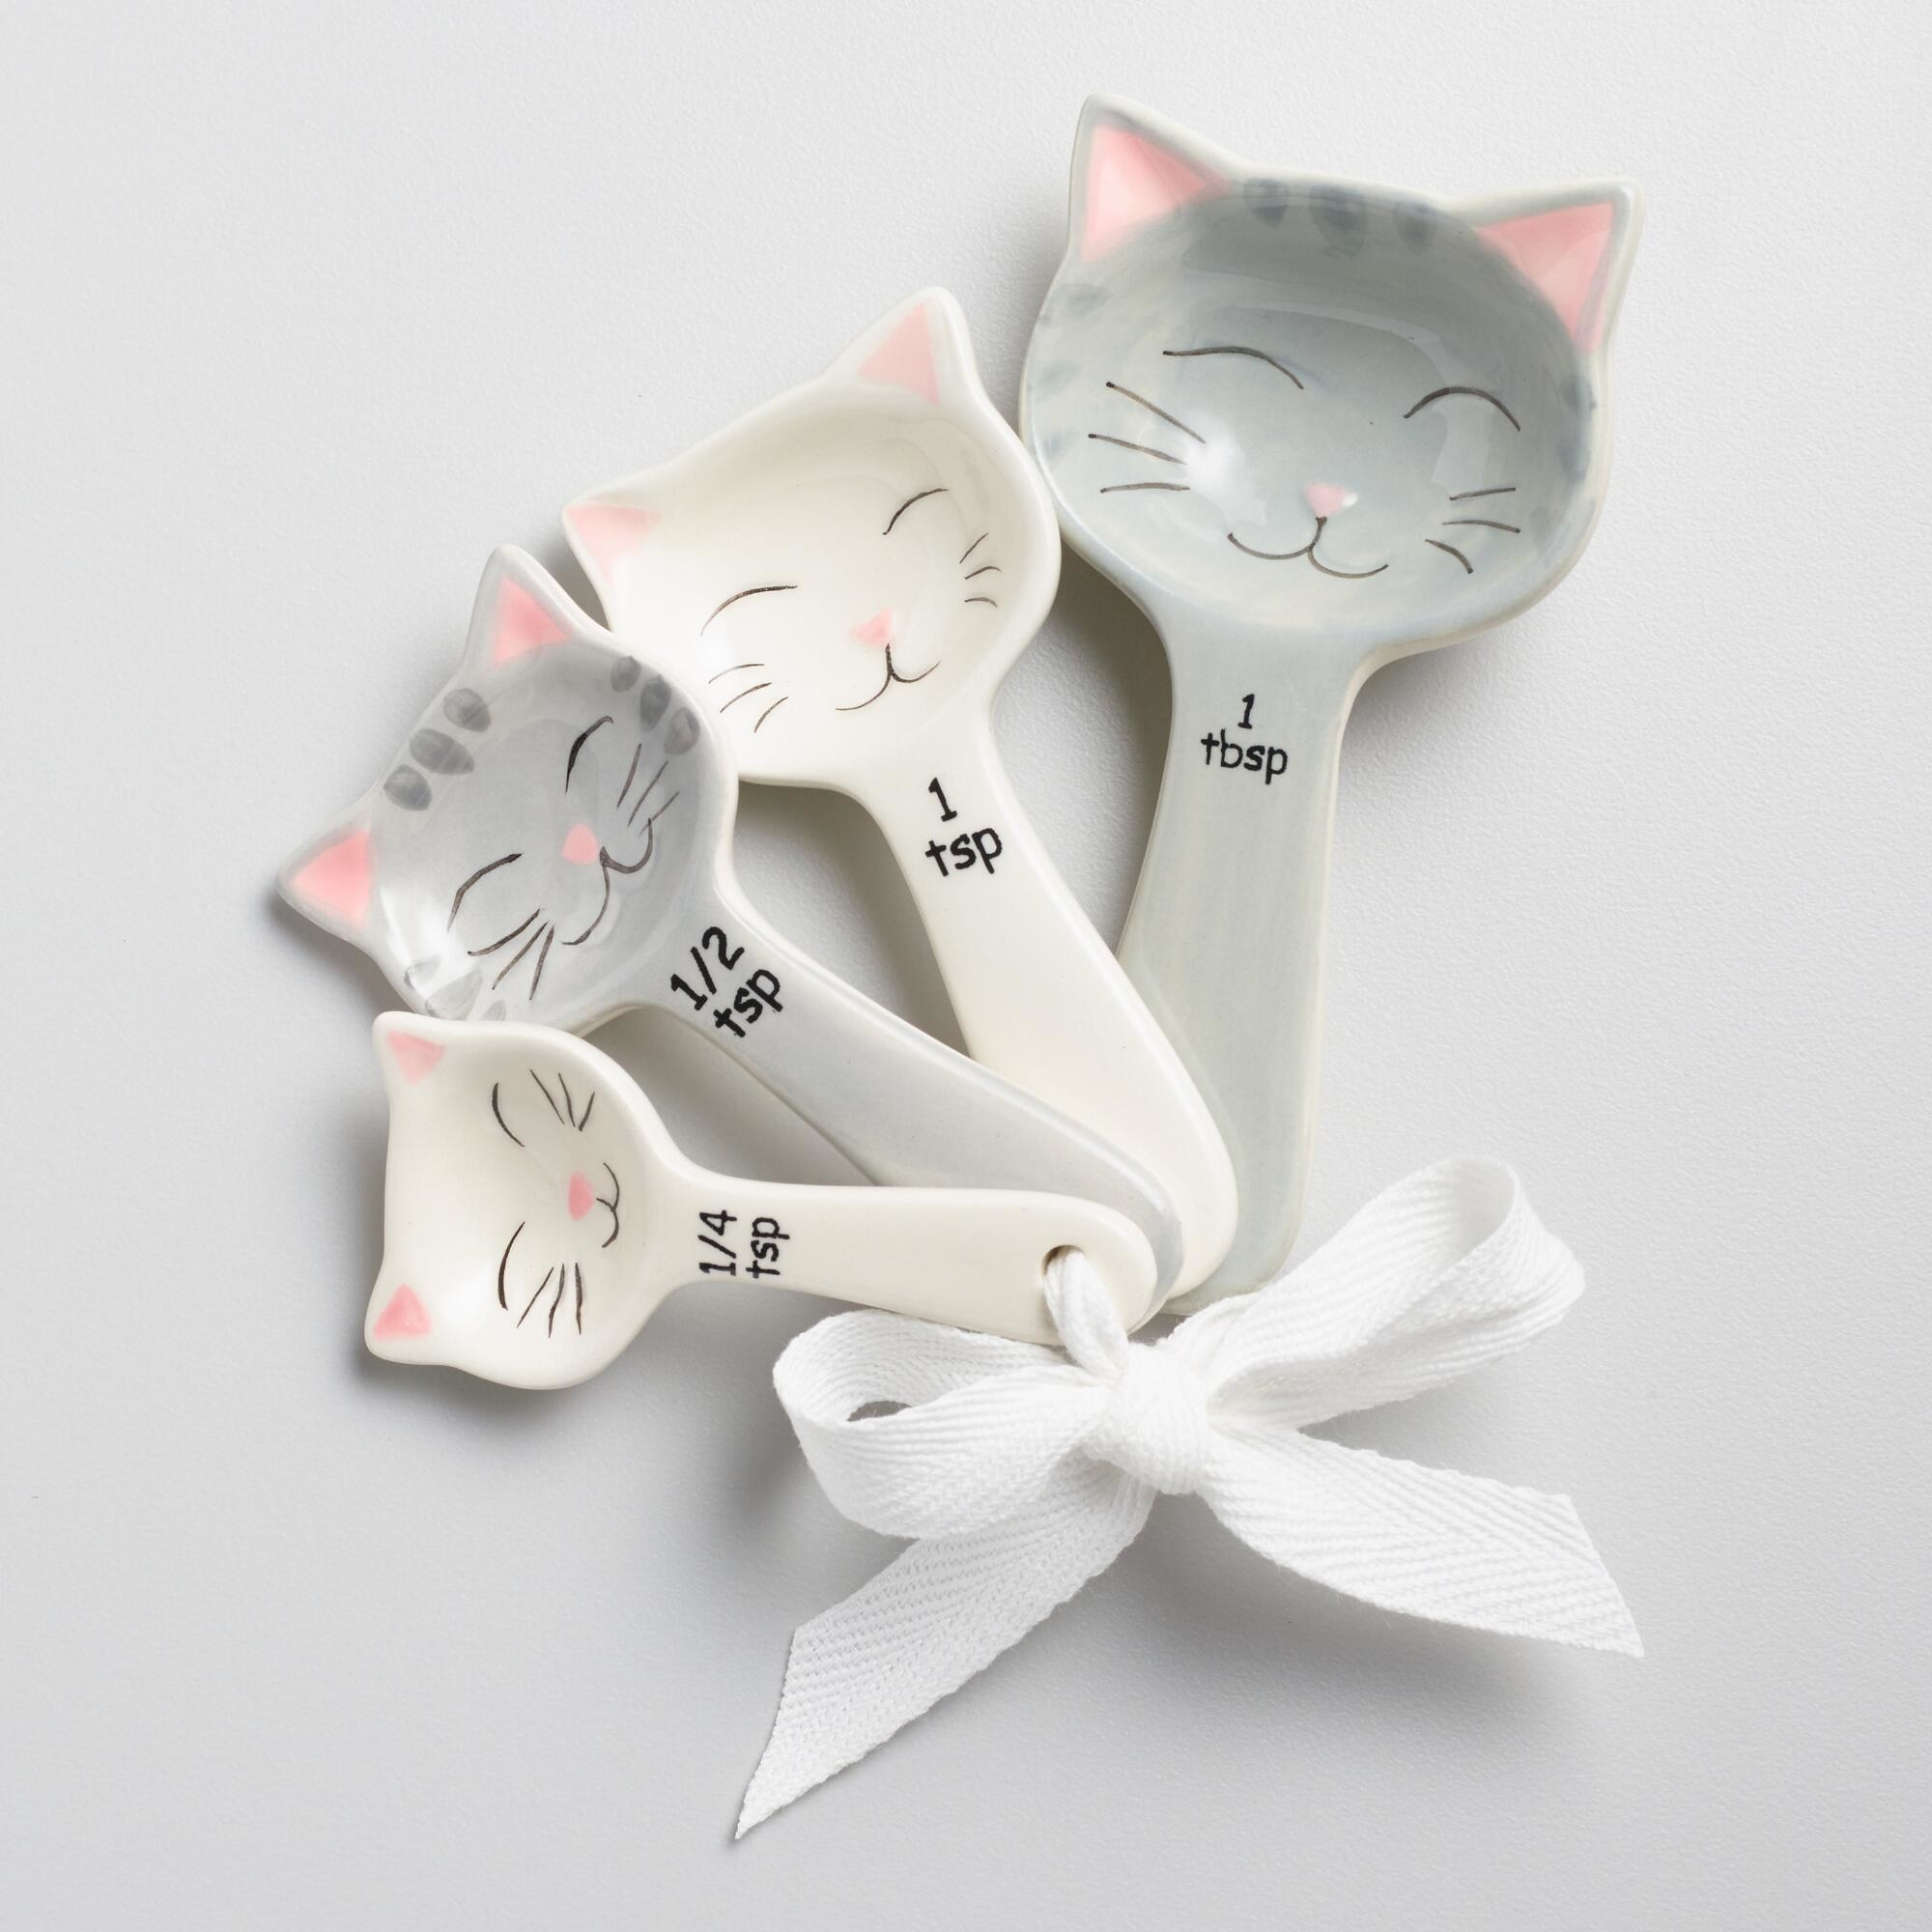 the measuring spoons with grey and white smiling cats